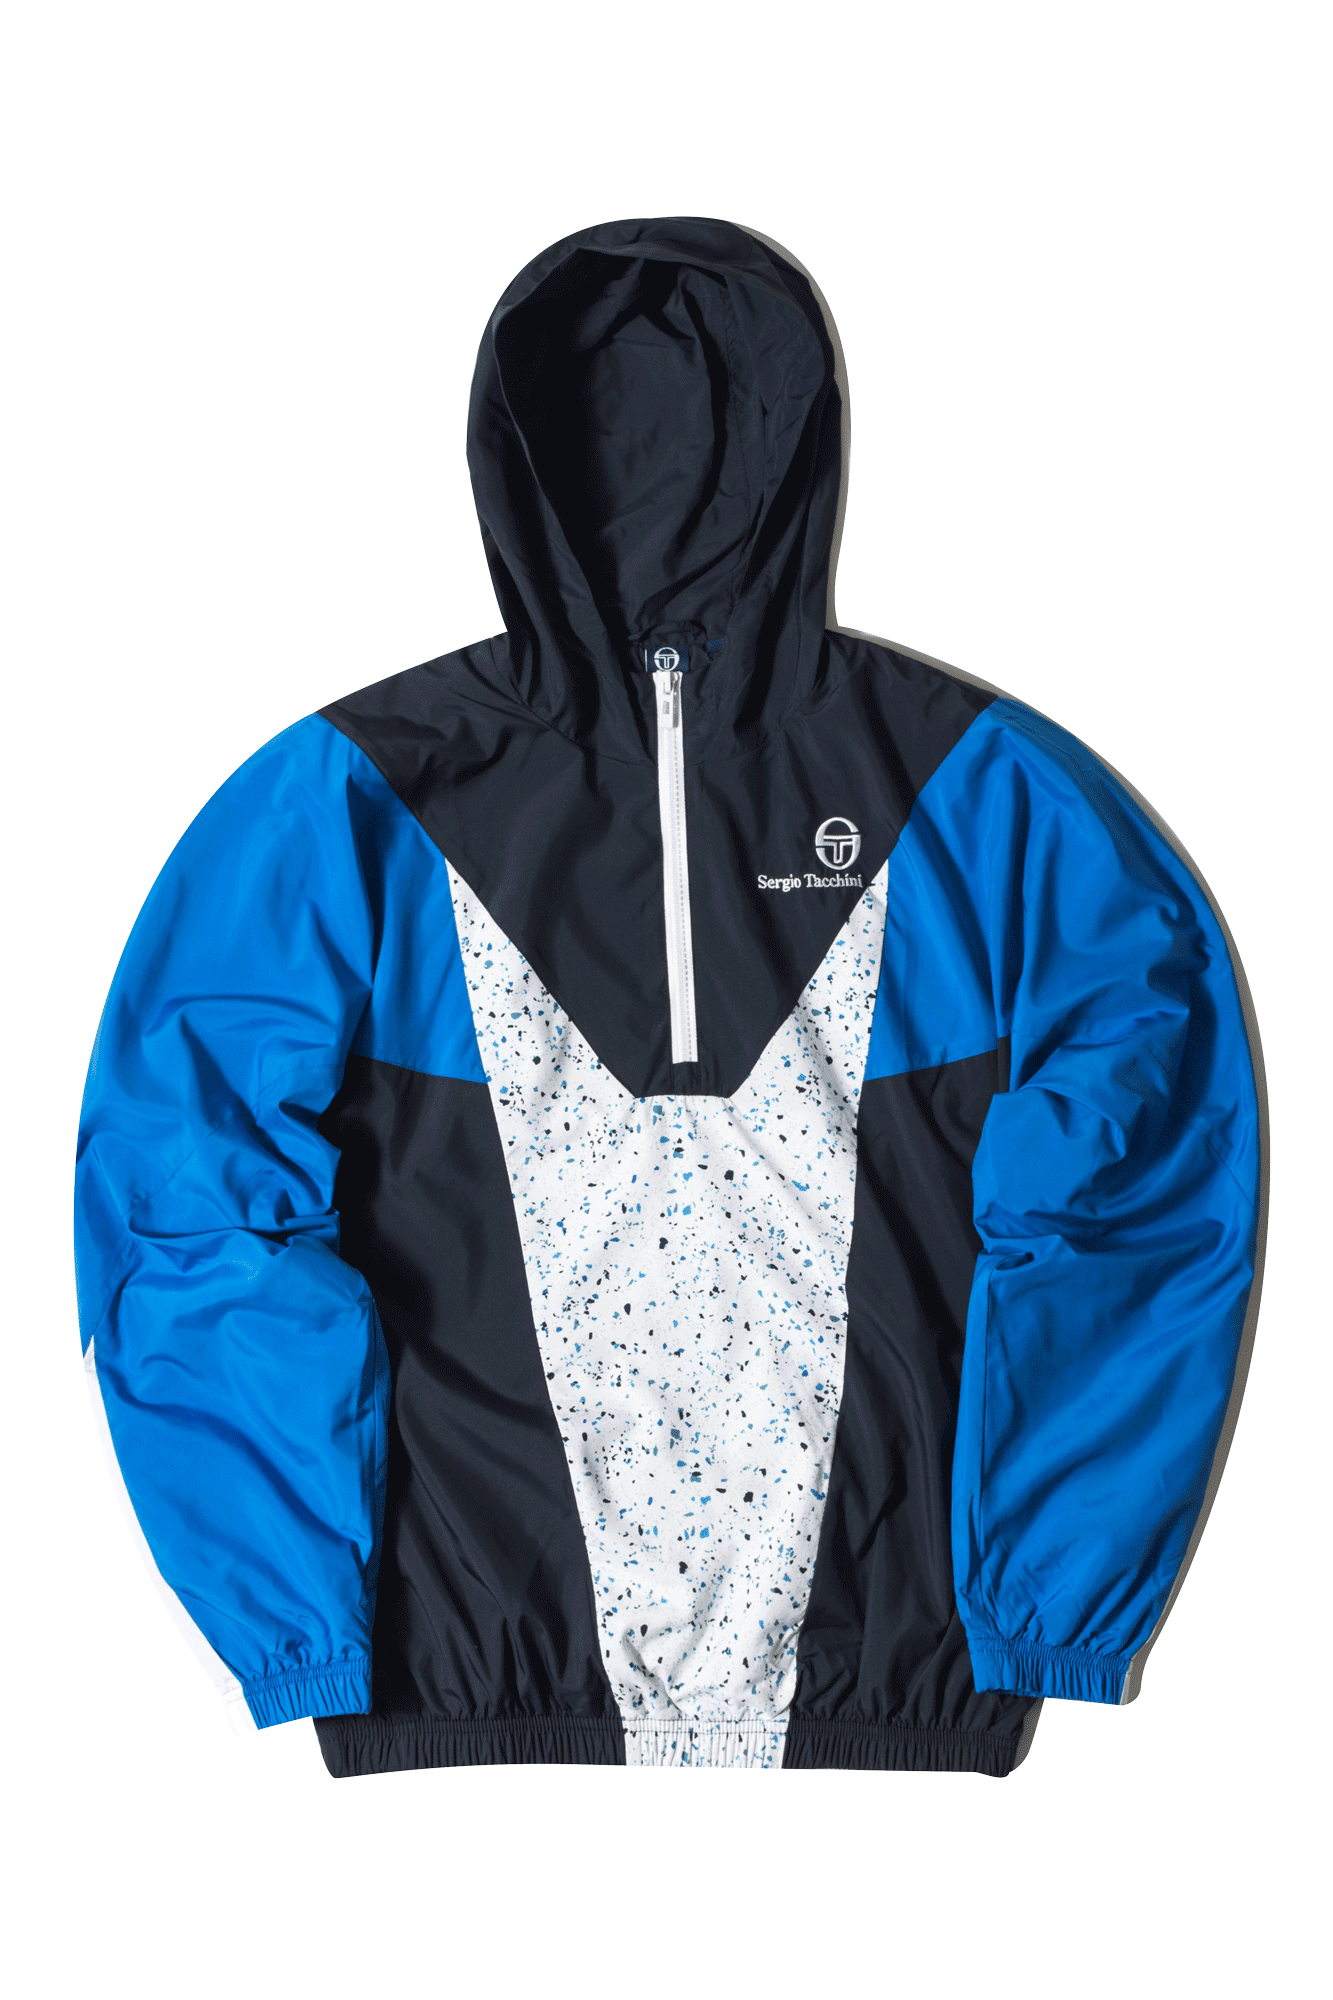 Sergio Tacchini Zip-up sweatshirt Coltan Tracktop H/Zip Terrazzo Blue 38031-216#000#BLU#S - One Block Down